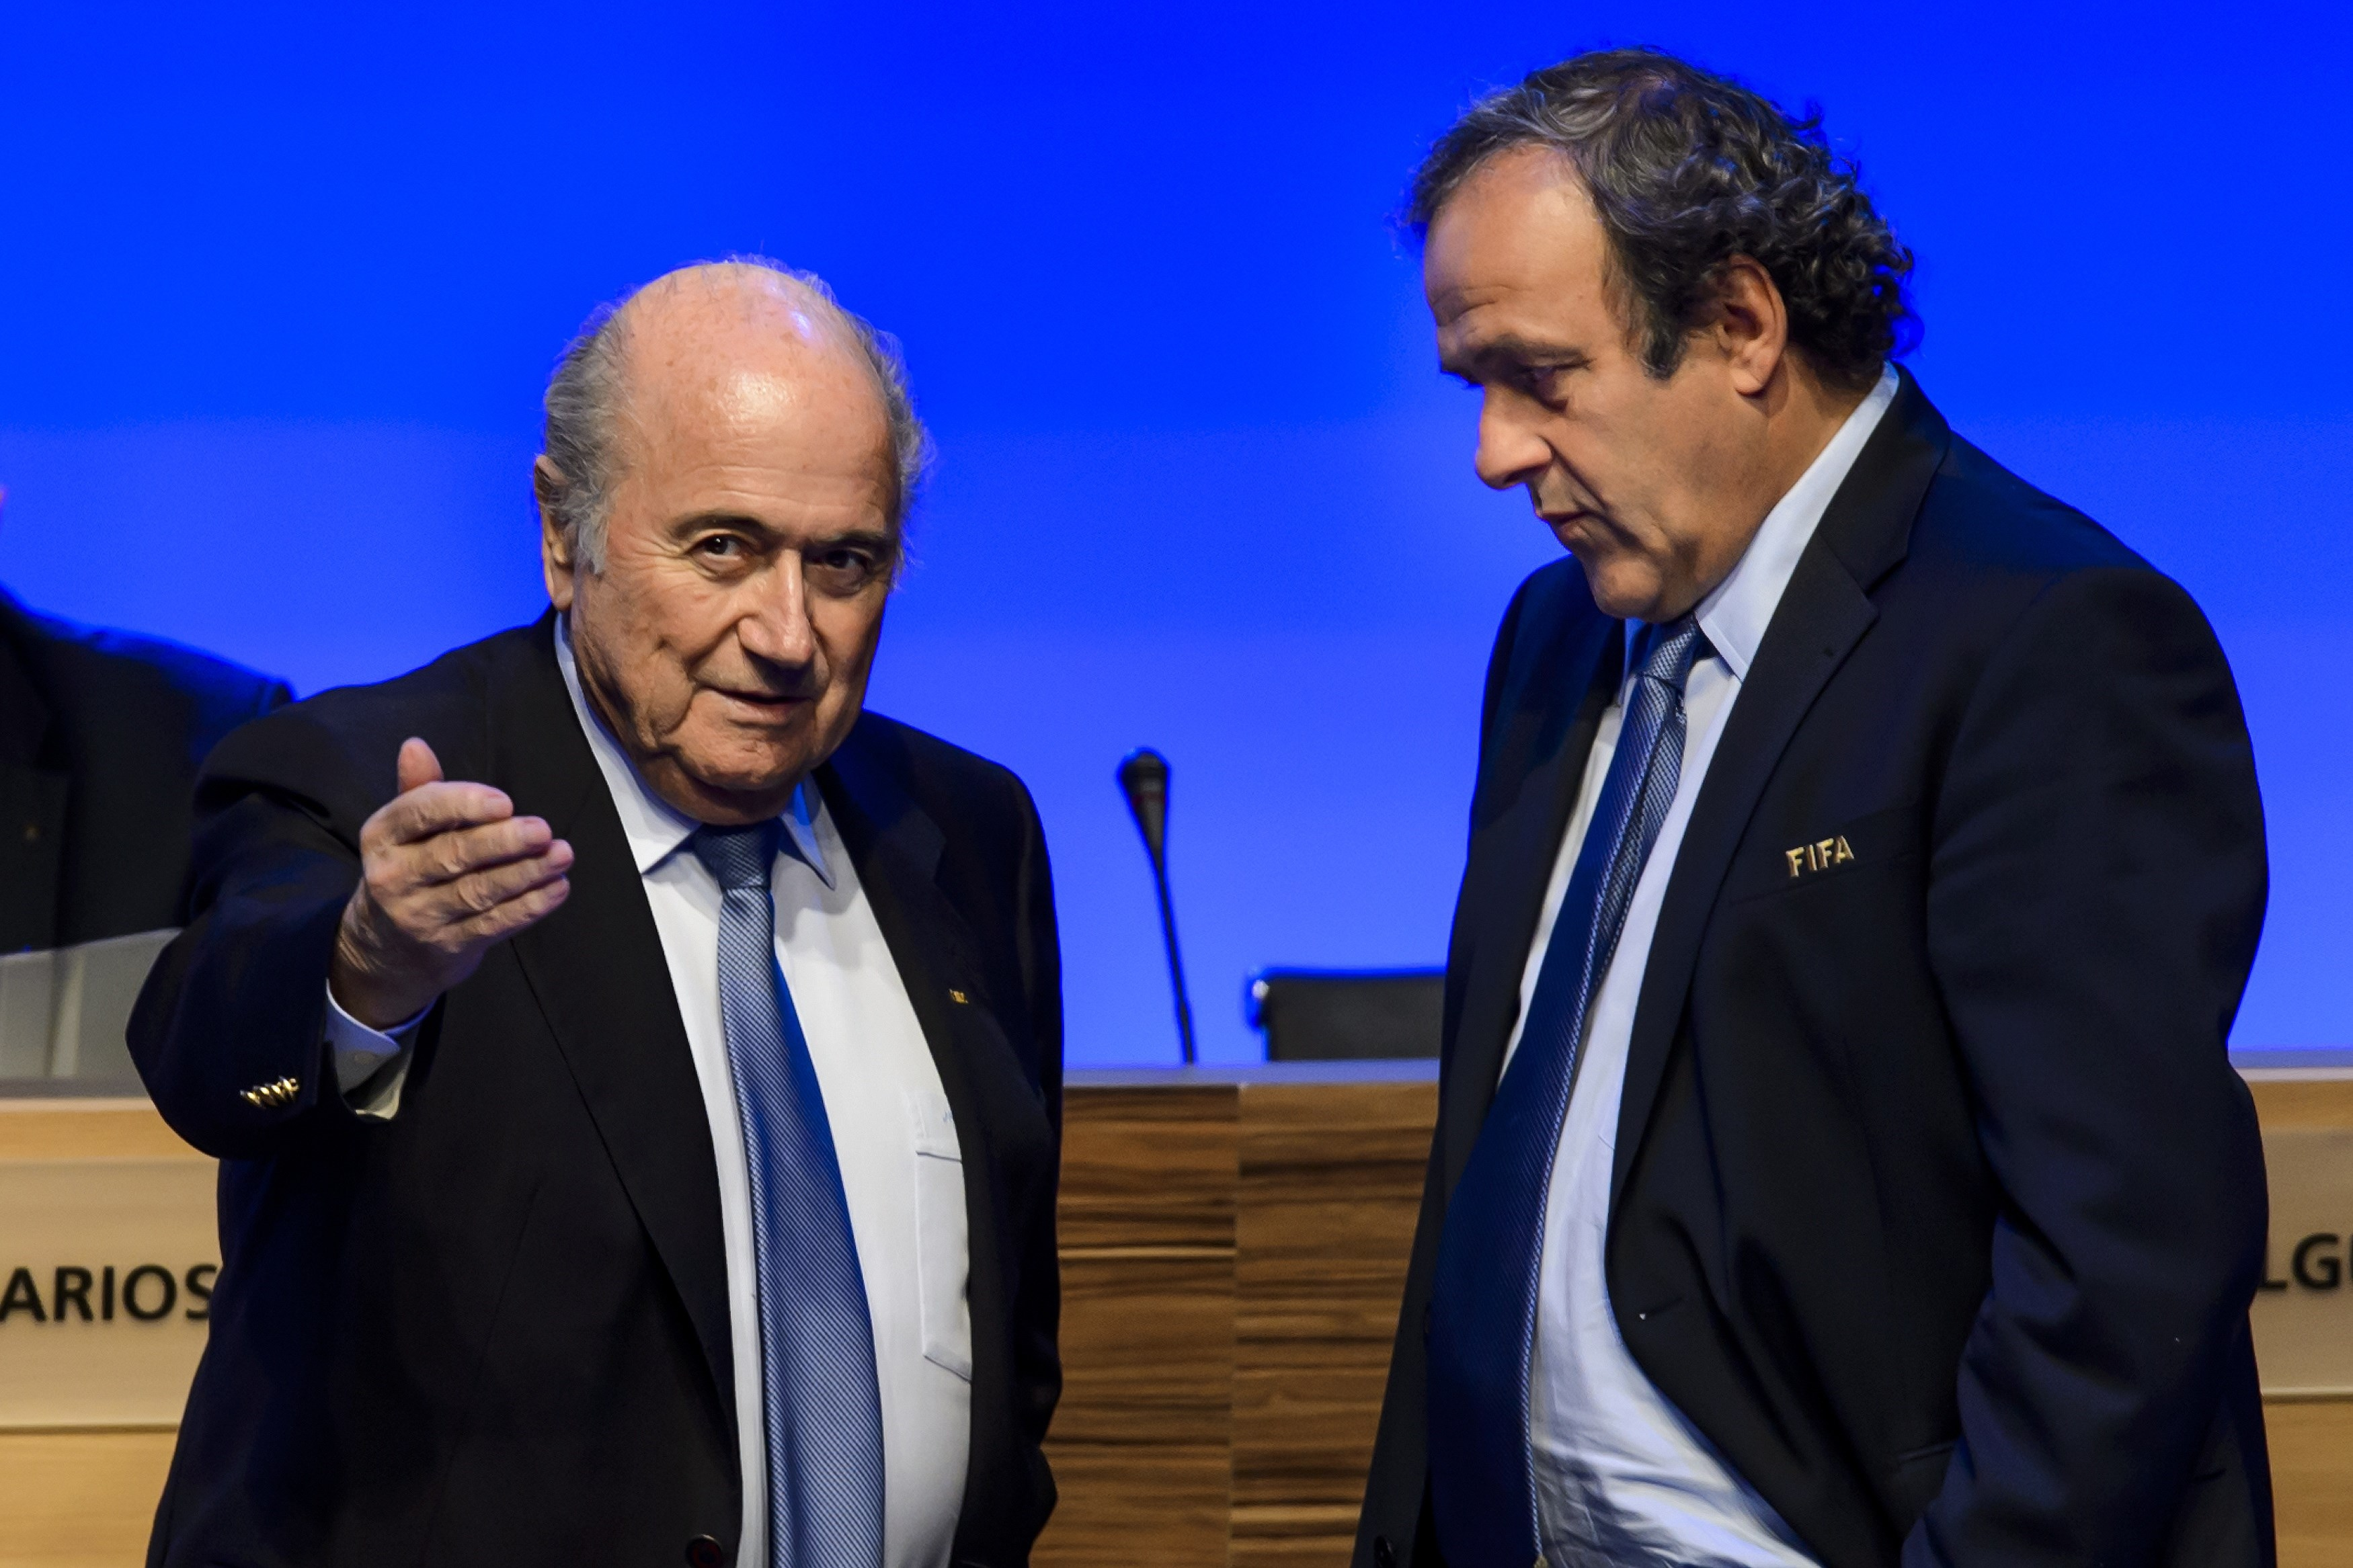 Fifa ban Sepp Blatter and Michel Platini from football for eight years